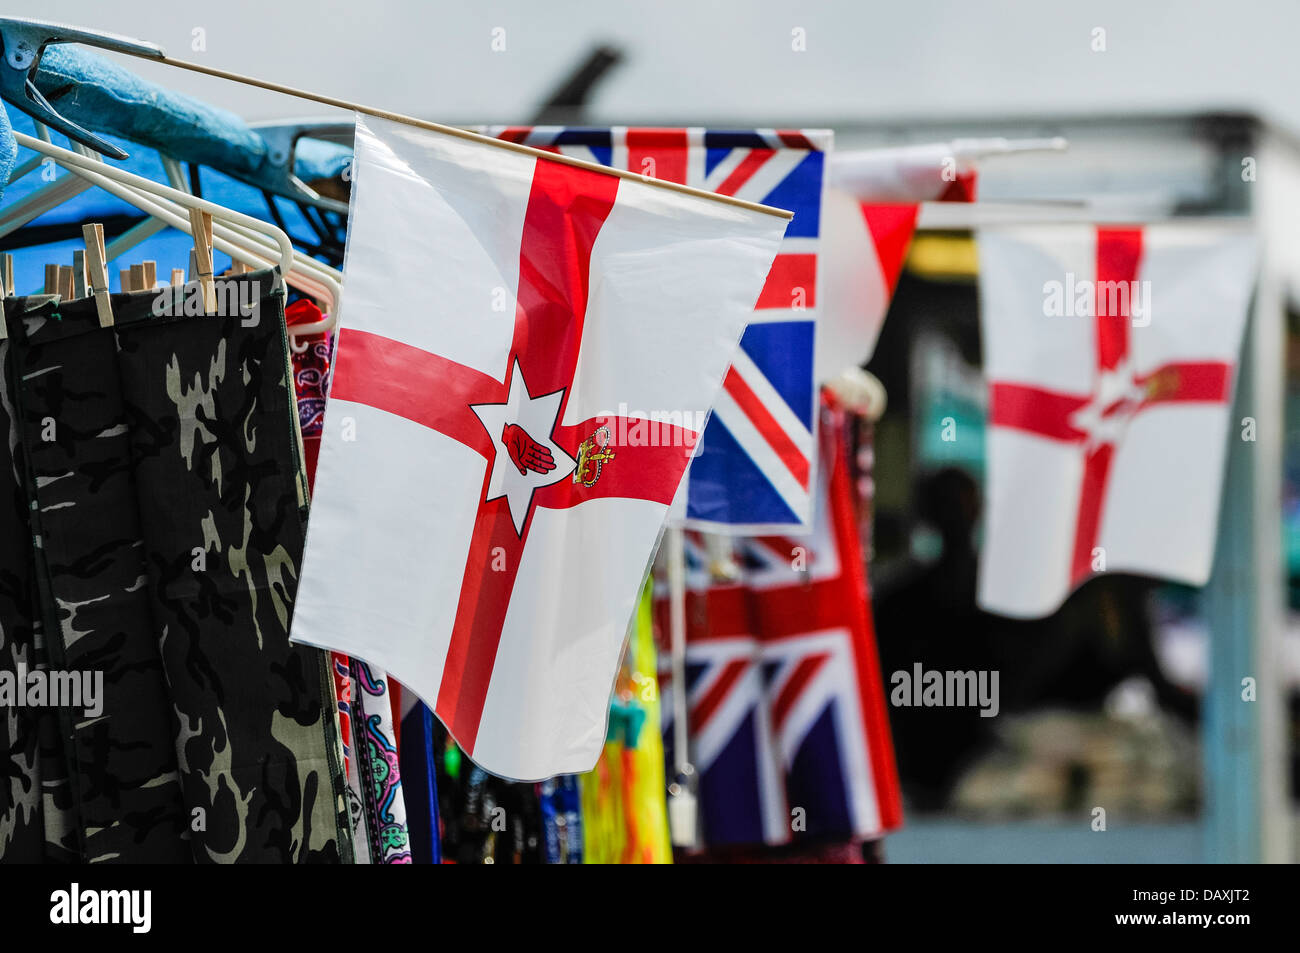 Ulster parliament (defunct) flags and Union flags on sale at a market stall - Stock Image